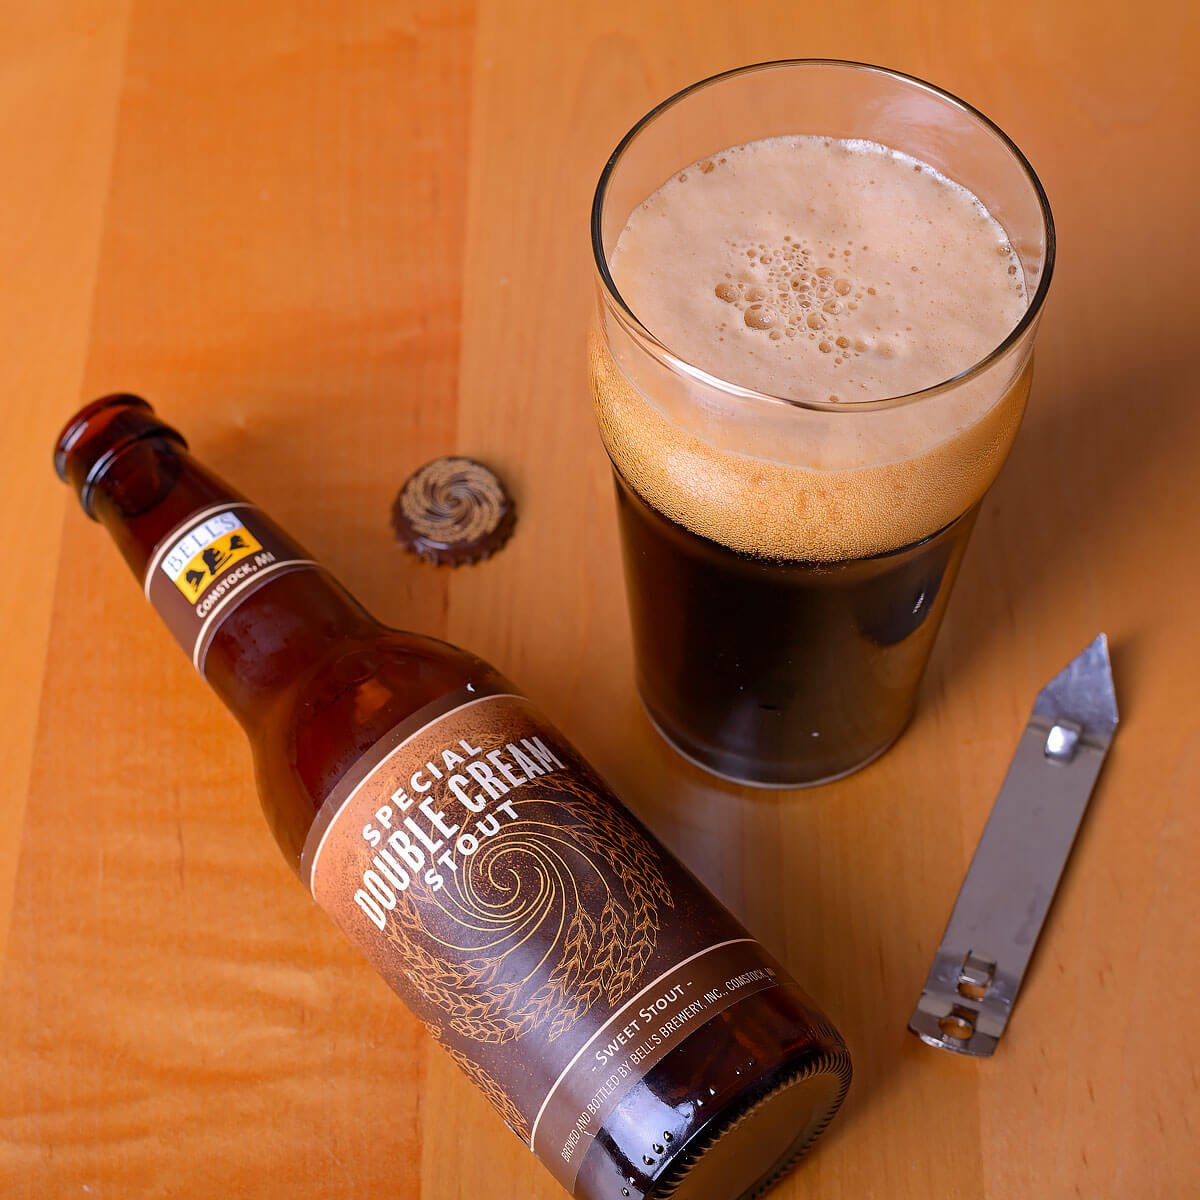 Special Double Cream Stout, an American Stout by Bell's Brewery, Inc.